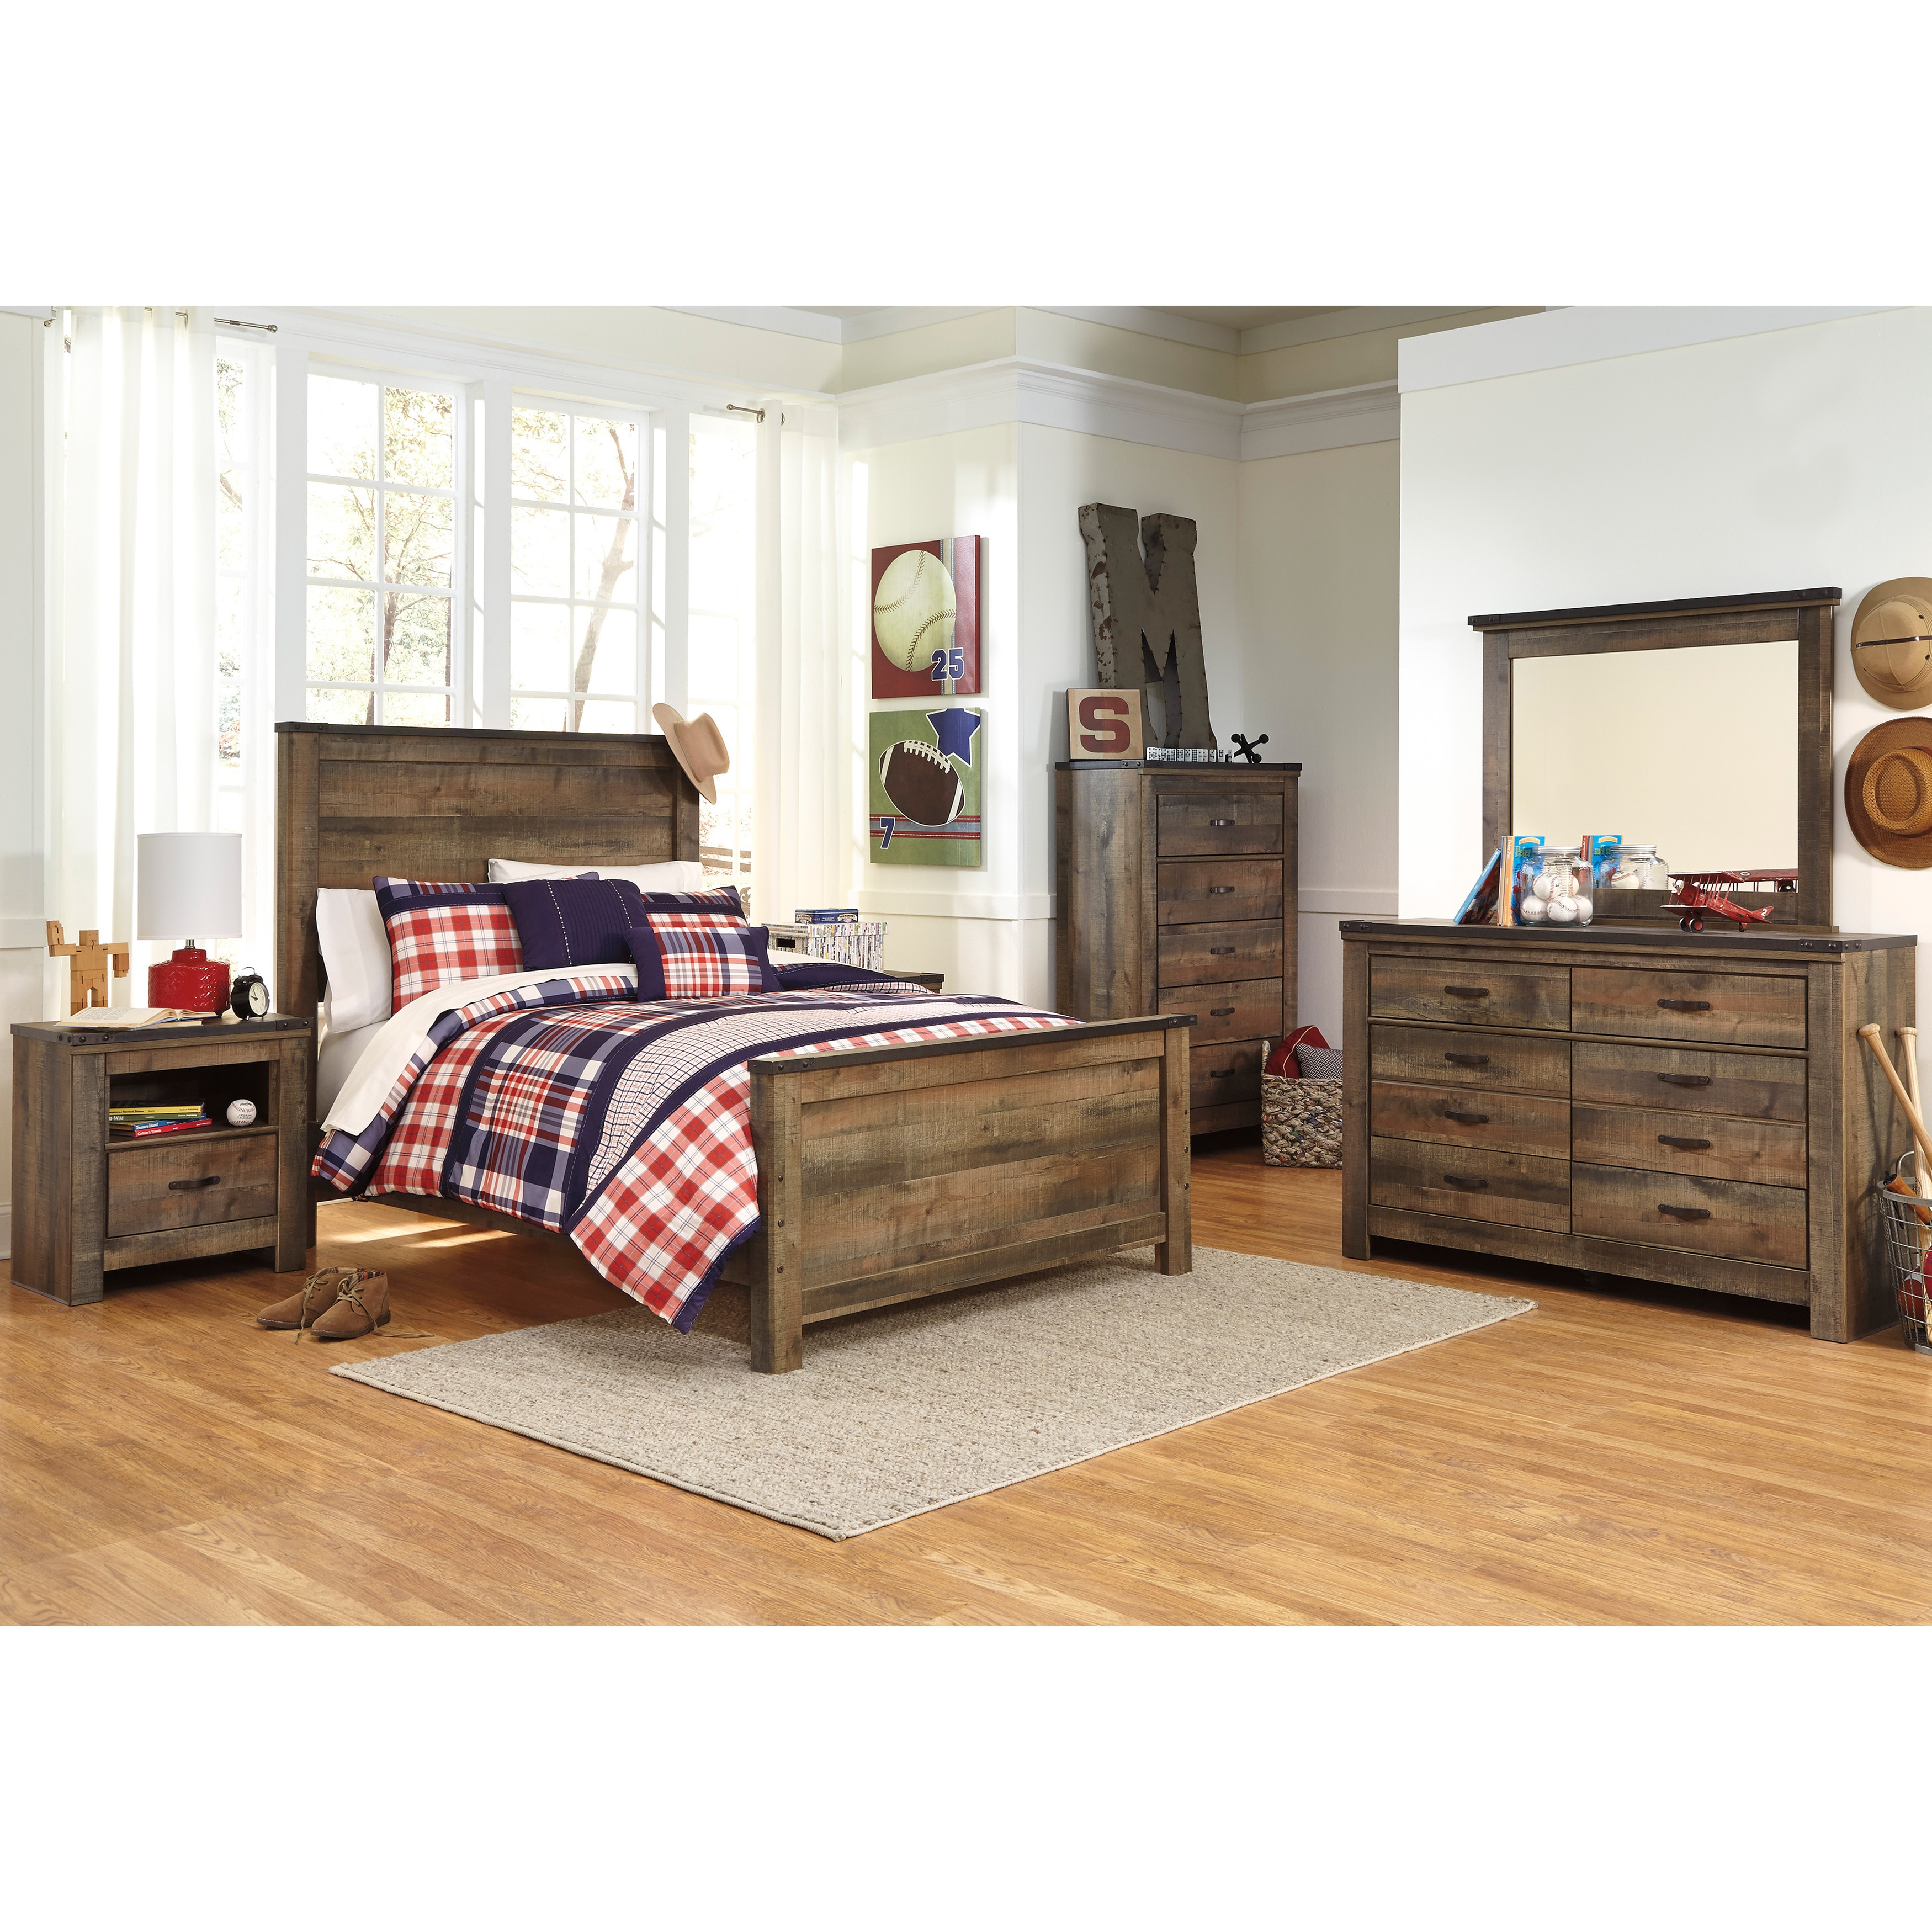 base bed cheap with frame steel drawers wood queen frames drawer epic on and top storage as first beds for bunk factor designs mattress inside full plan size rate